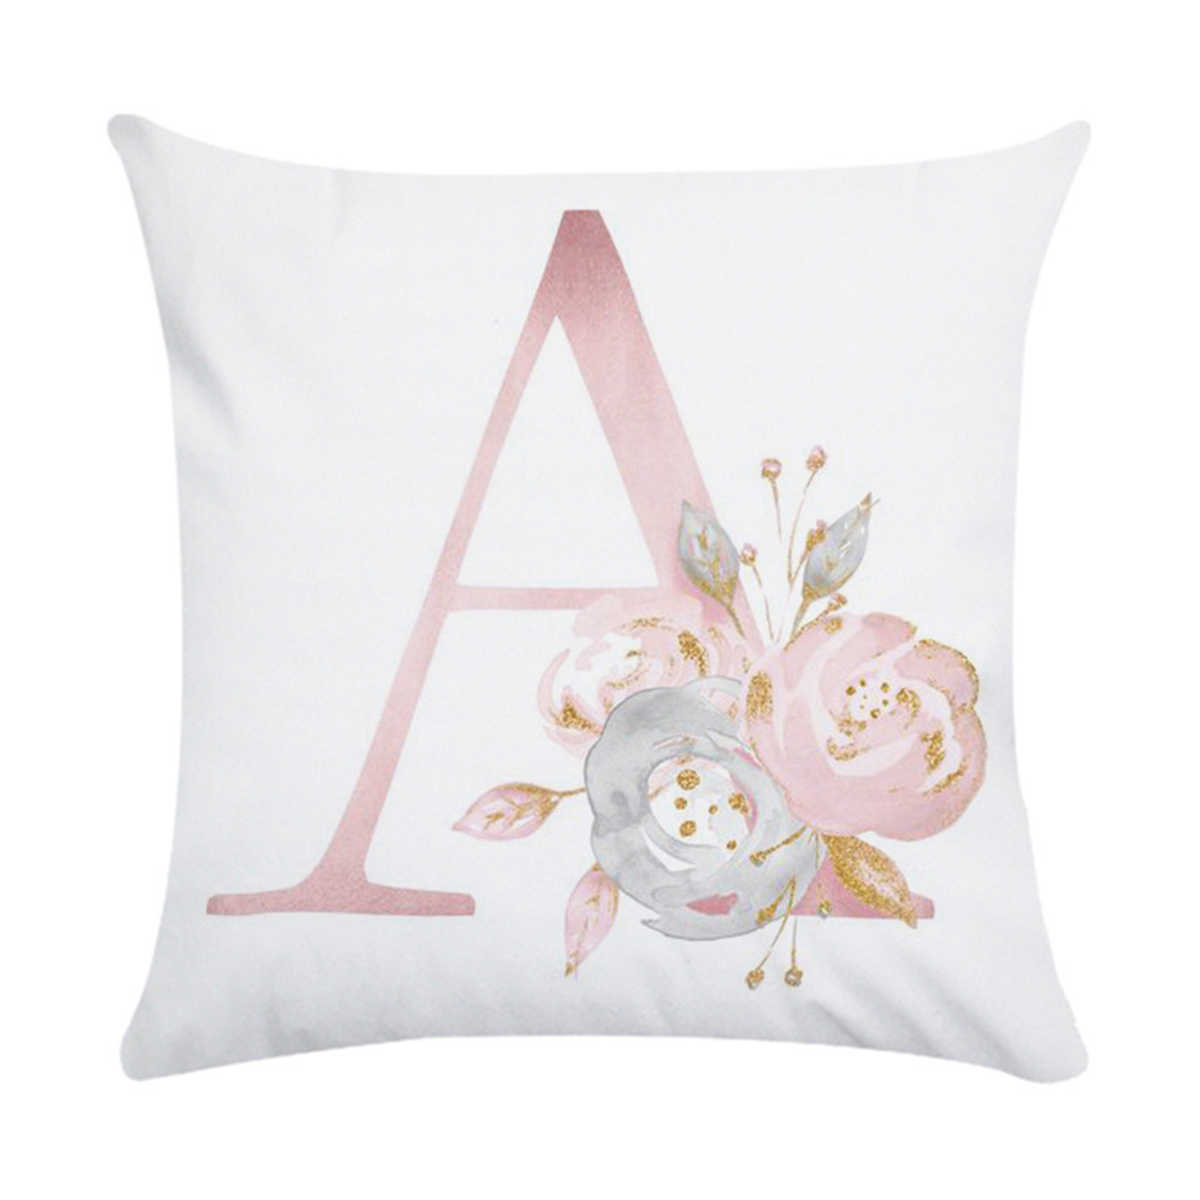 Puseky 45x45cm Alphabet Floral Print Throw Pillow Case Waist Pillow Cover Wedding Bed Home Letter Polyester Pillow Cover